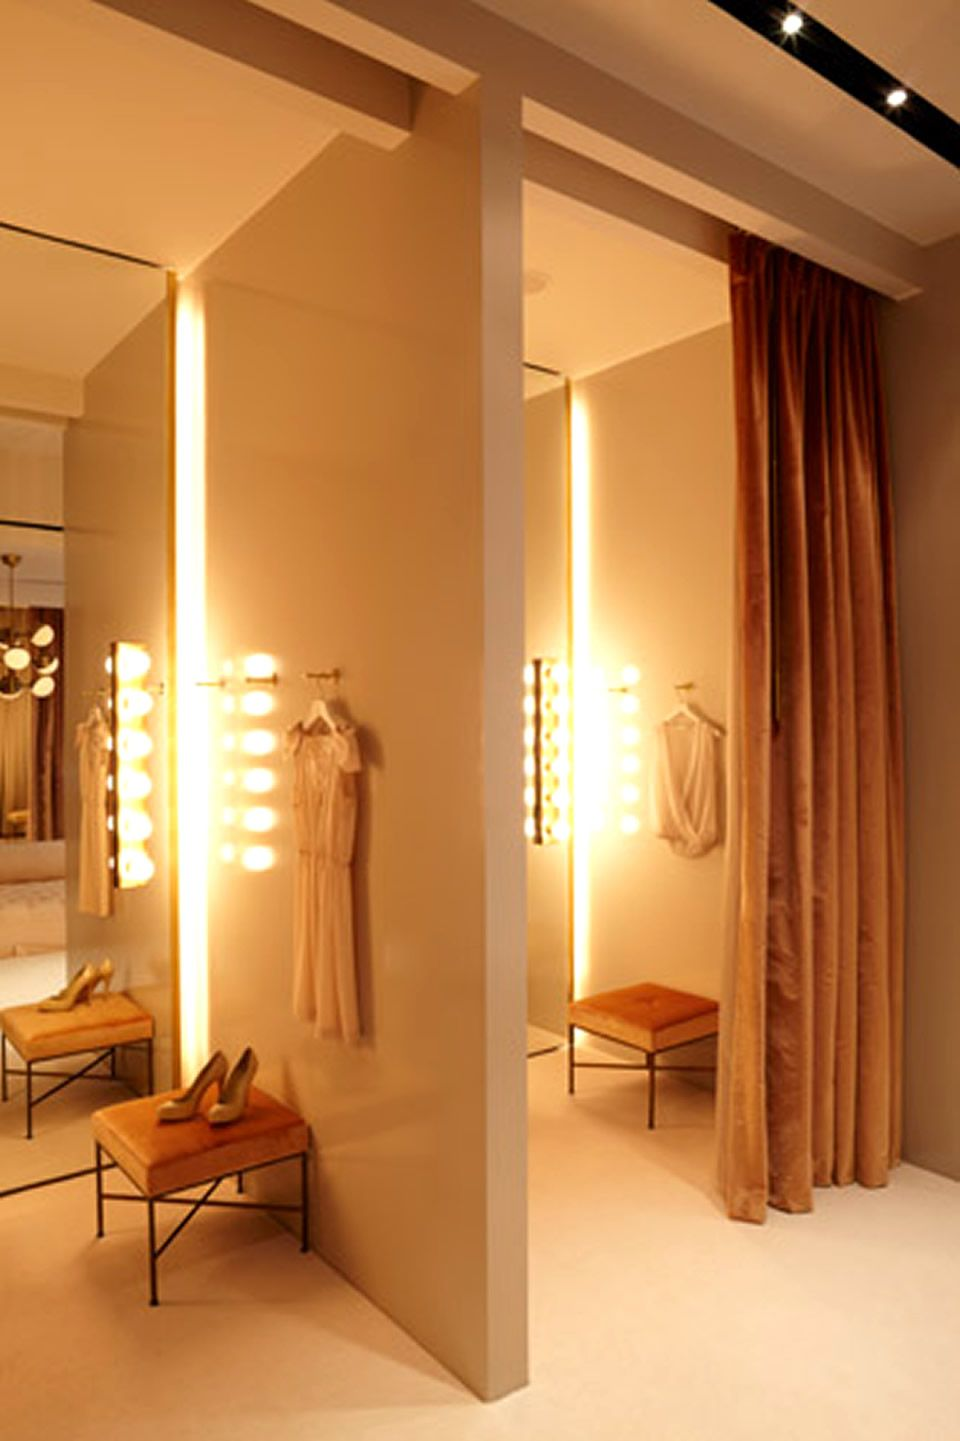 Dressing Room of Fashion Retail Store Interior Design. Makeup lights next to the mirror  Dressing Room of Fashion Retail